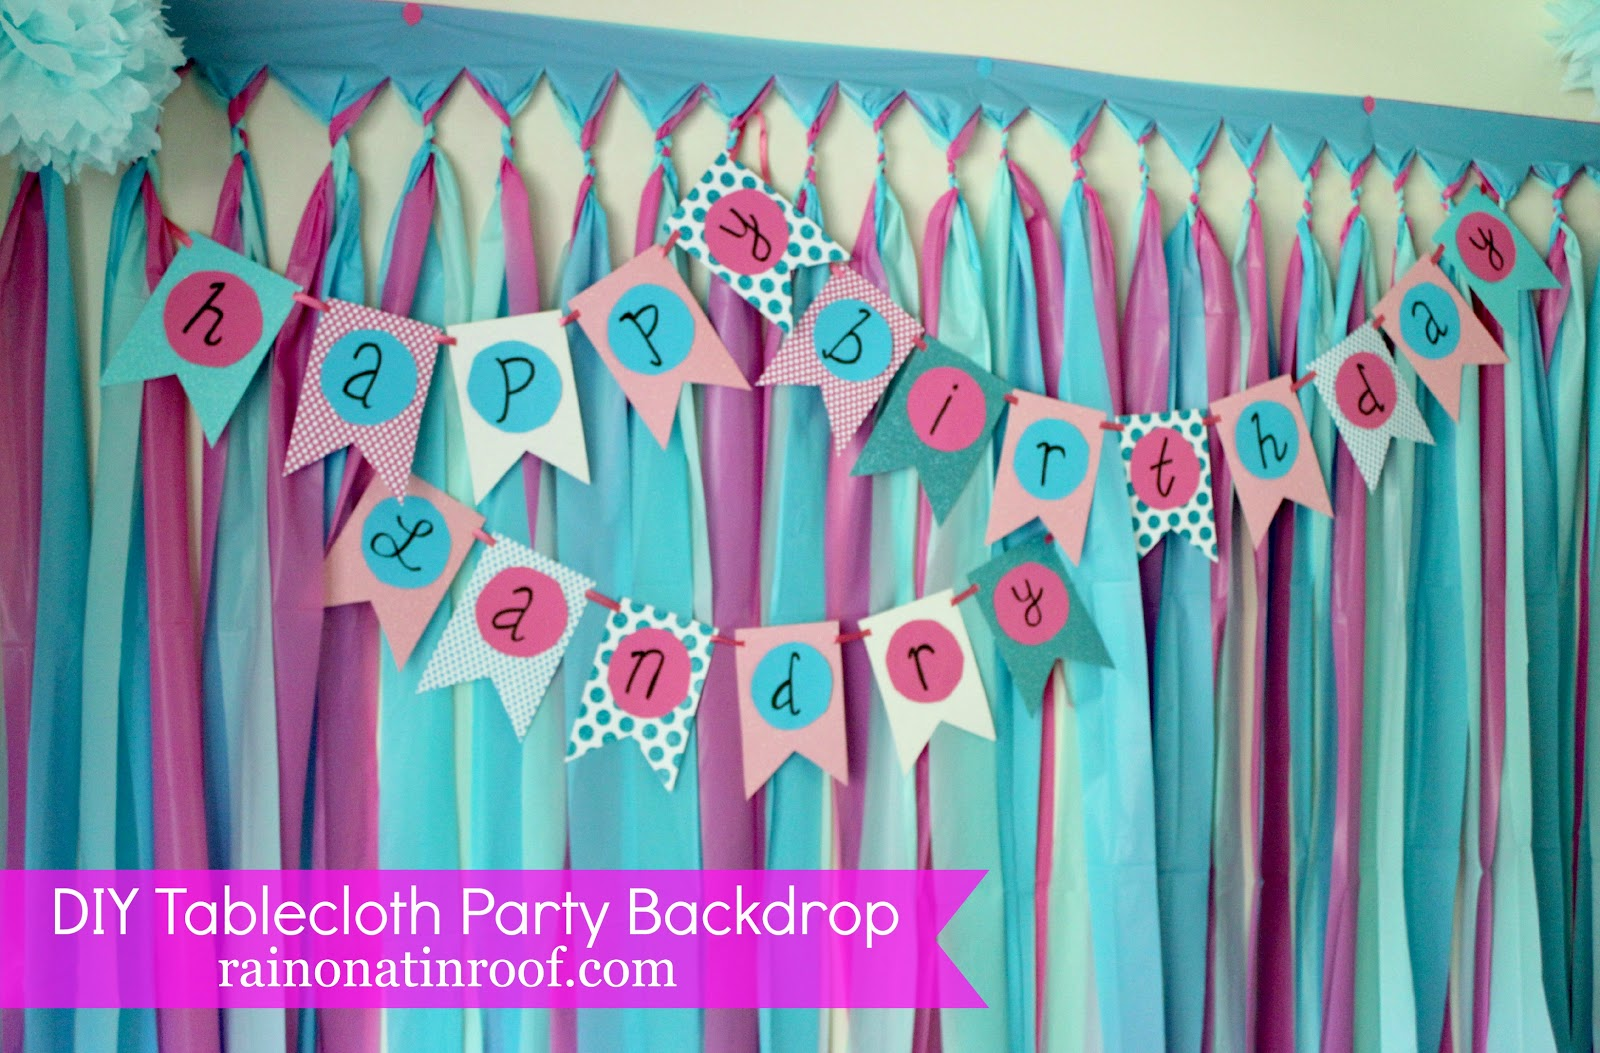 backdrop ideas for birthday party ; DIY+Tablecloth+Party+Backdrop+3